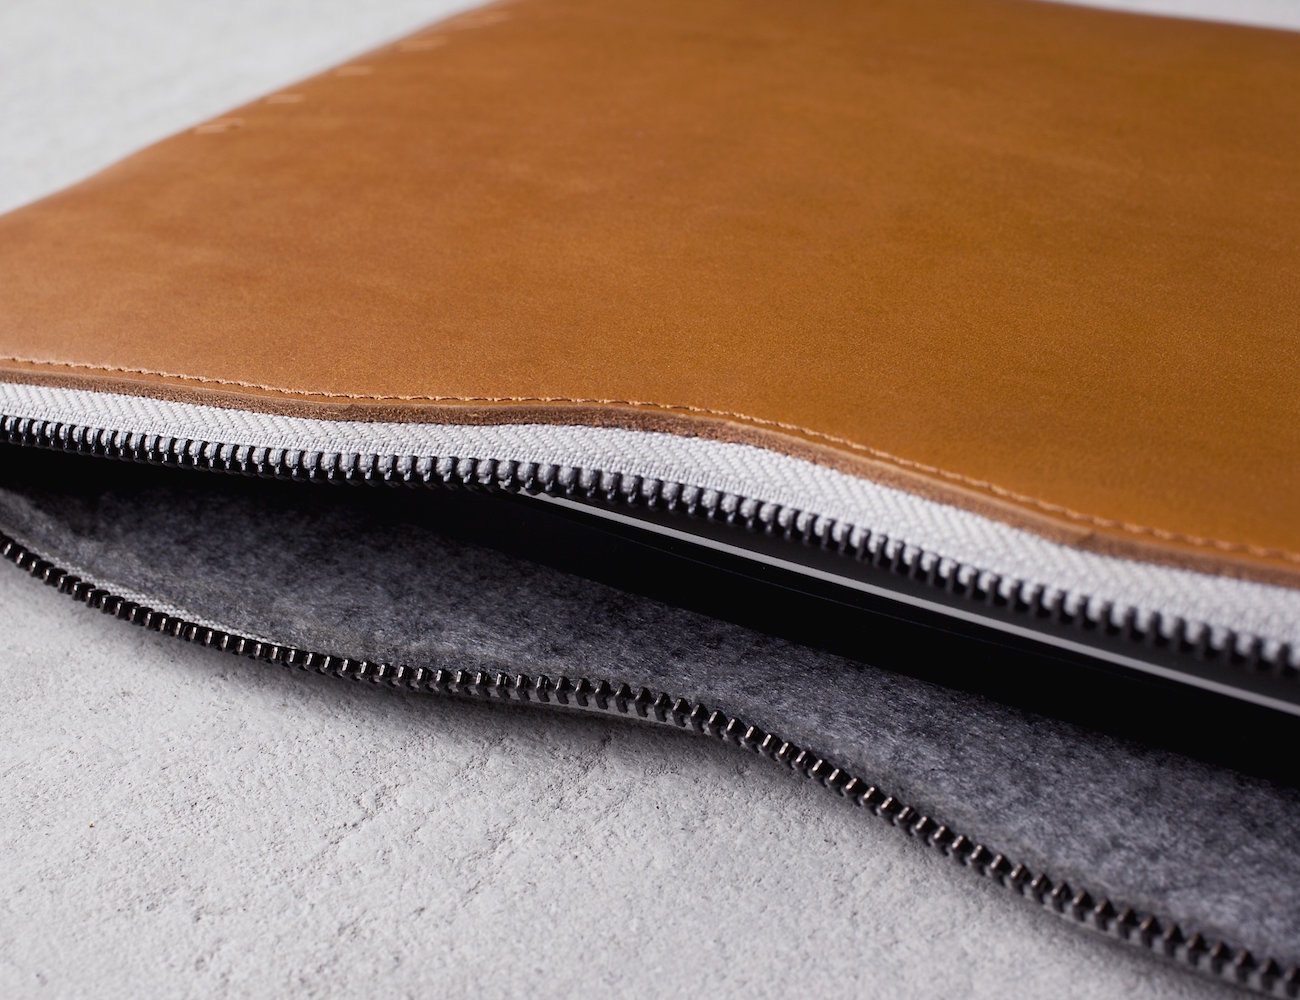 new product edf82 6f52e Leather MacBook Folio Sleeve by Mujjo